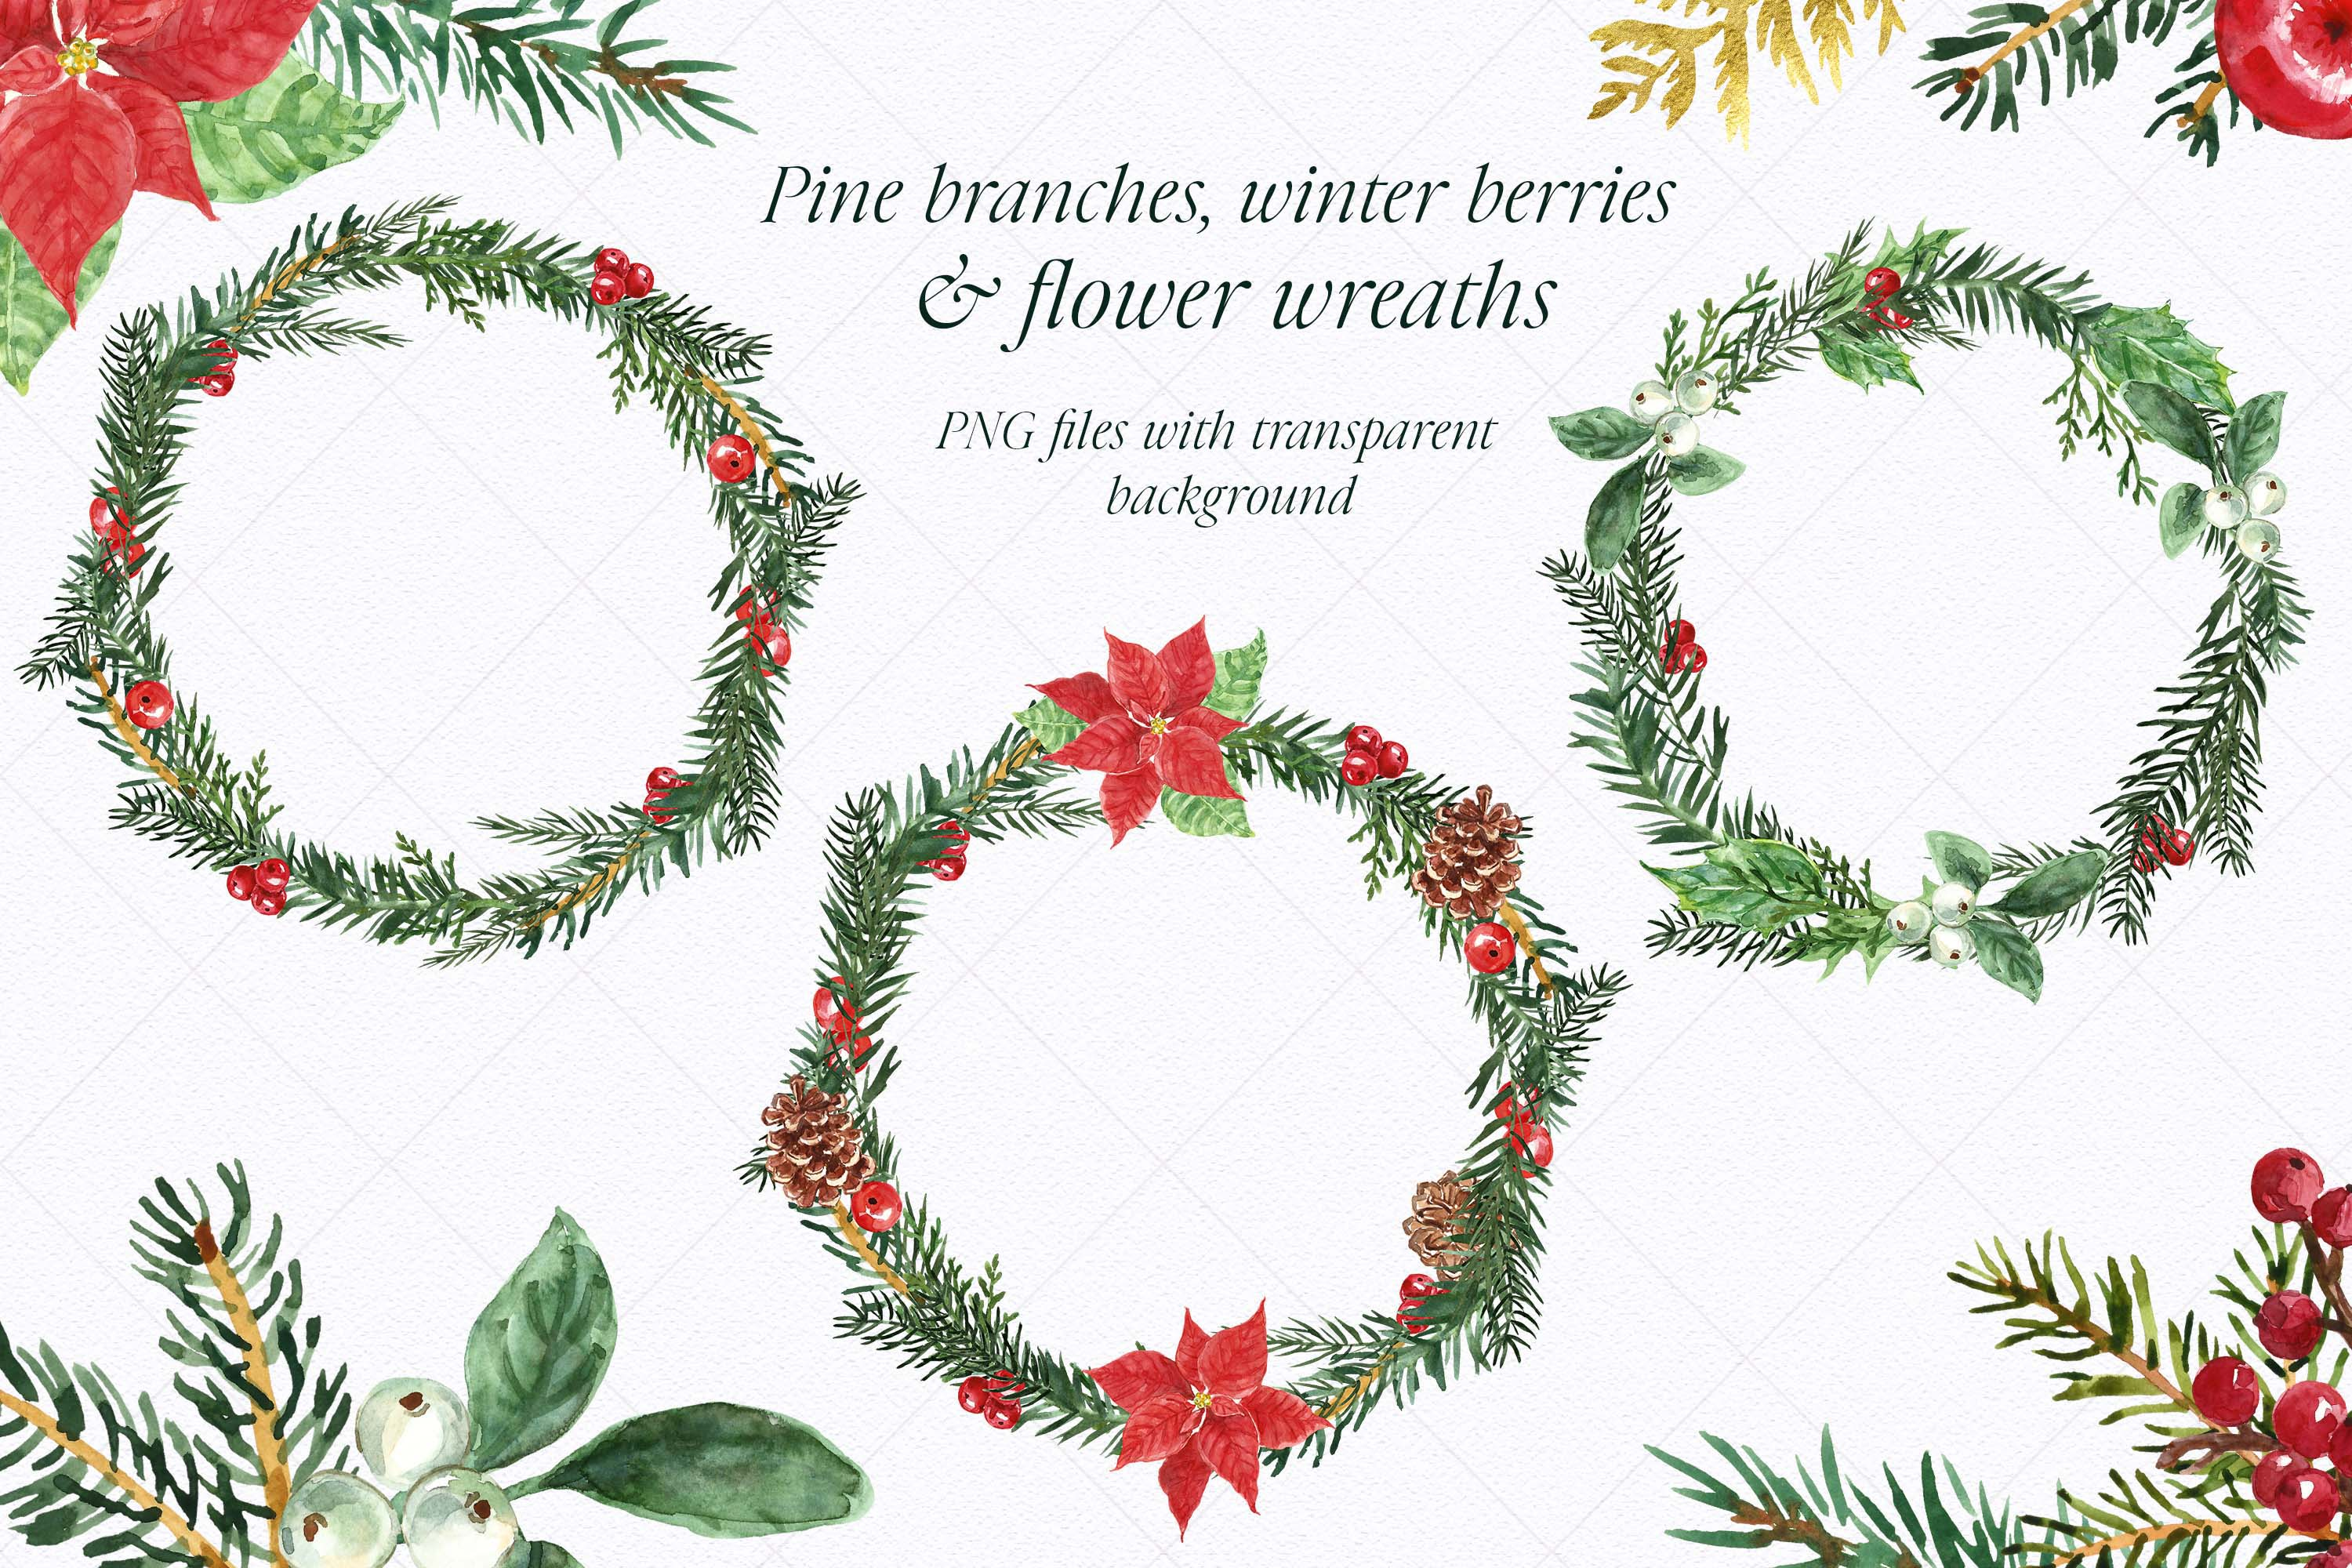 Watercolor Christmas Wreath Holiday Winter Borders Greenery example image 3